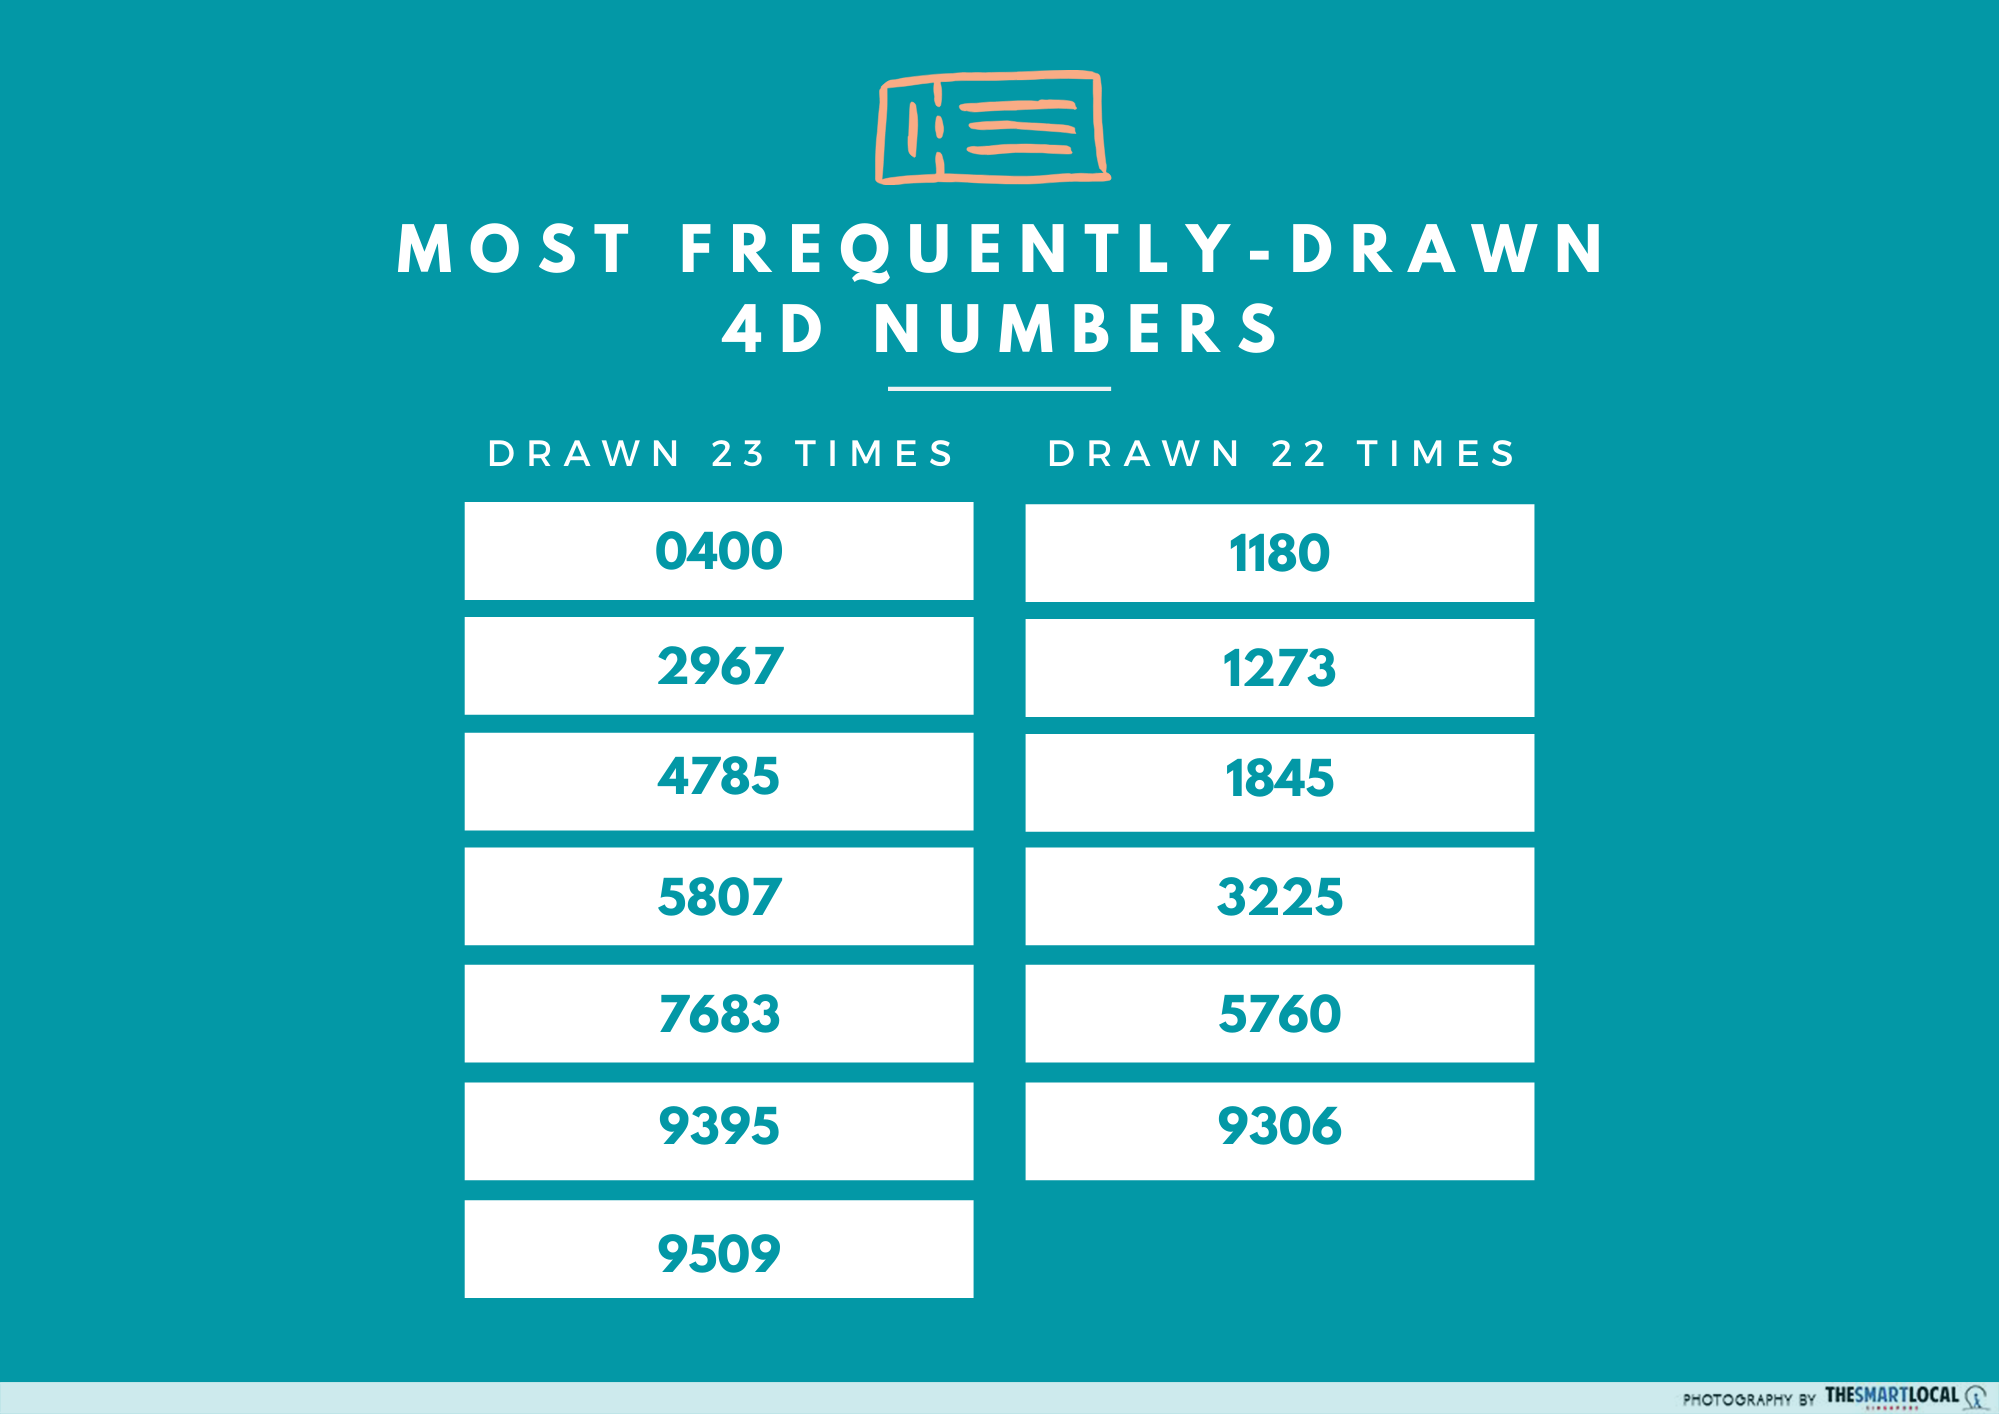 Most regularly drawn 4D numbers